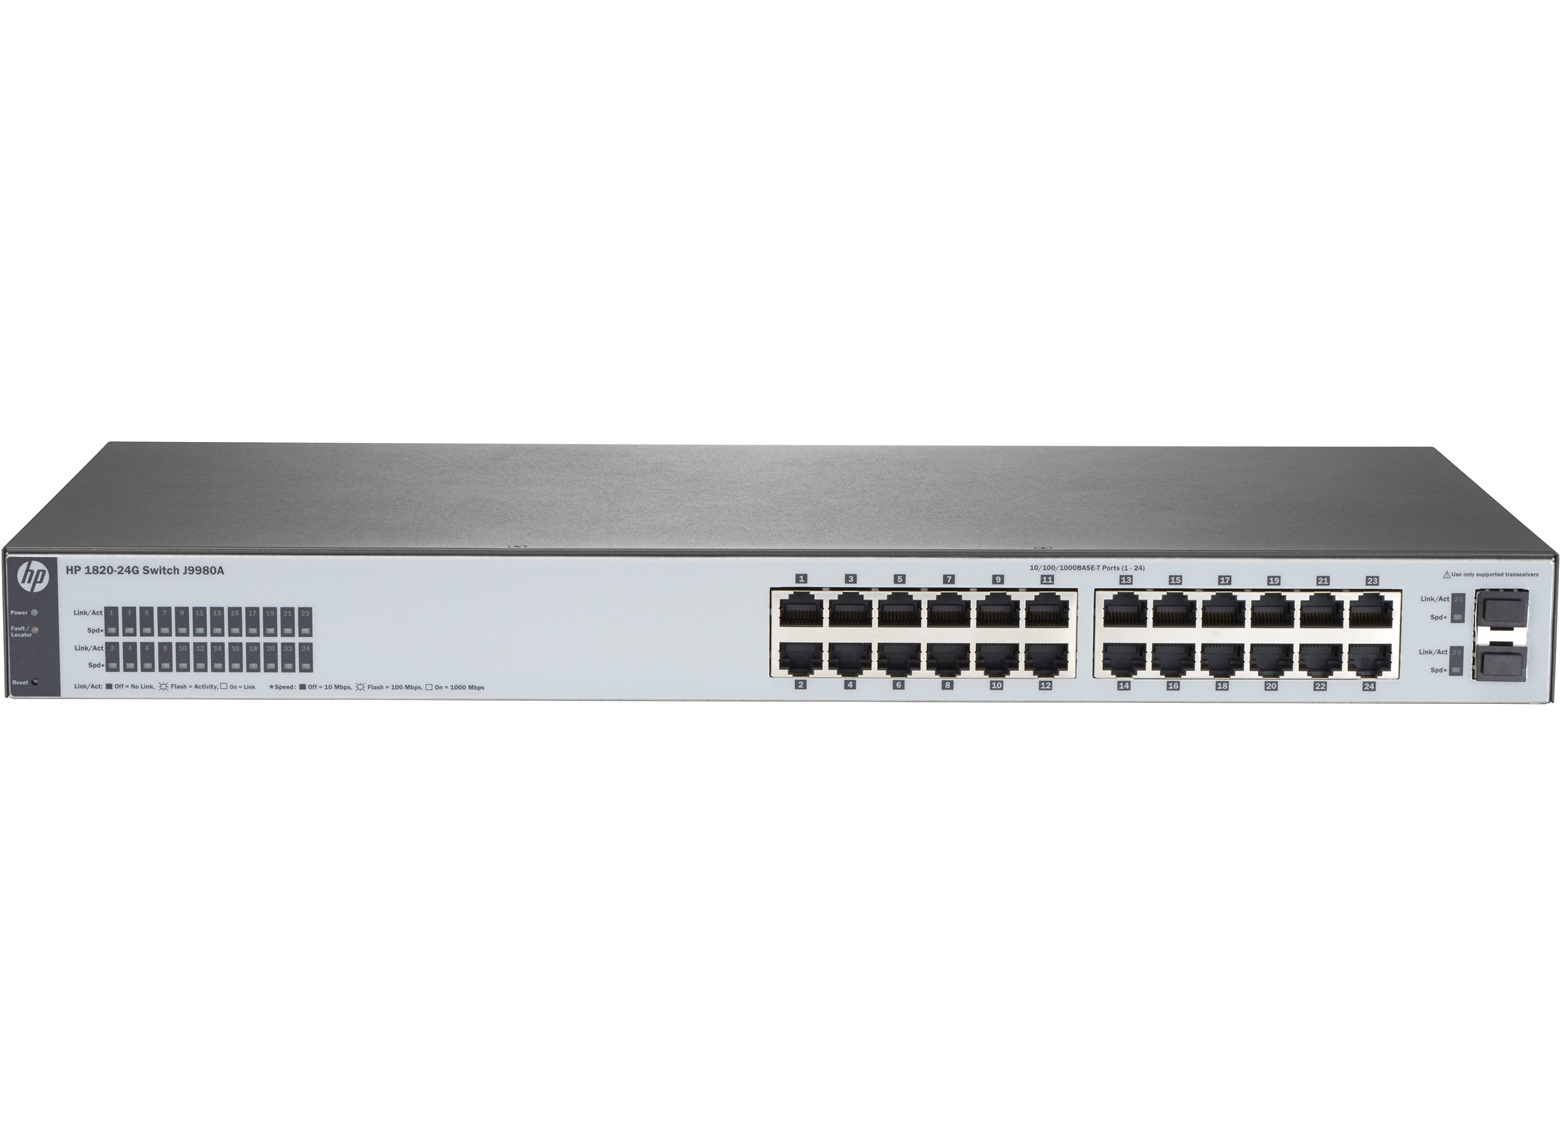 HPE 1820 24G Switch